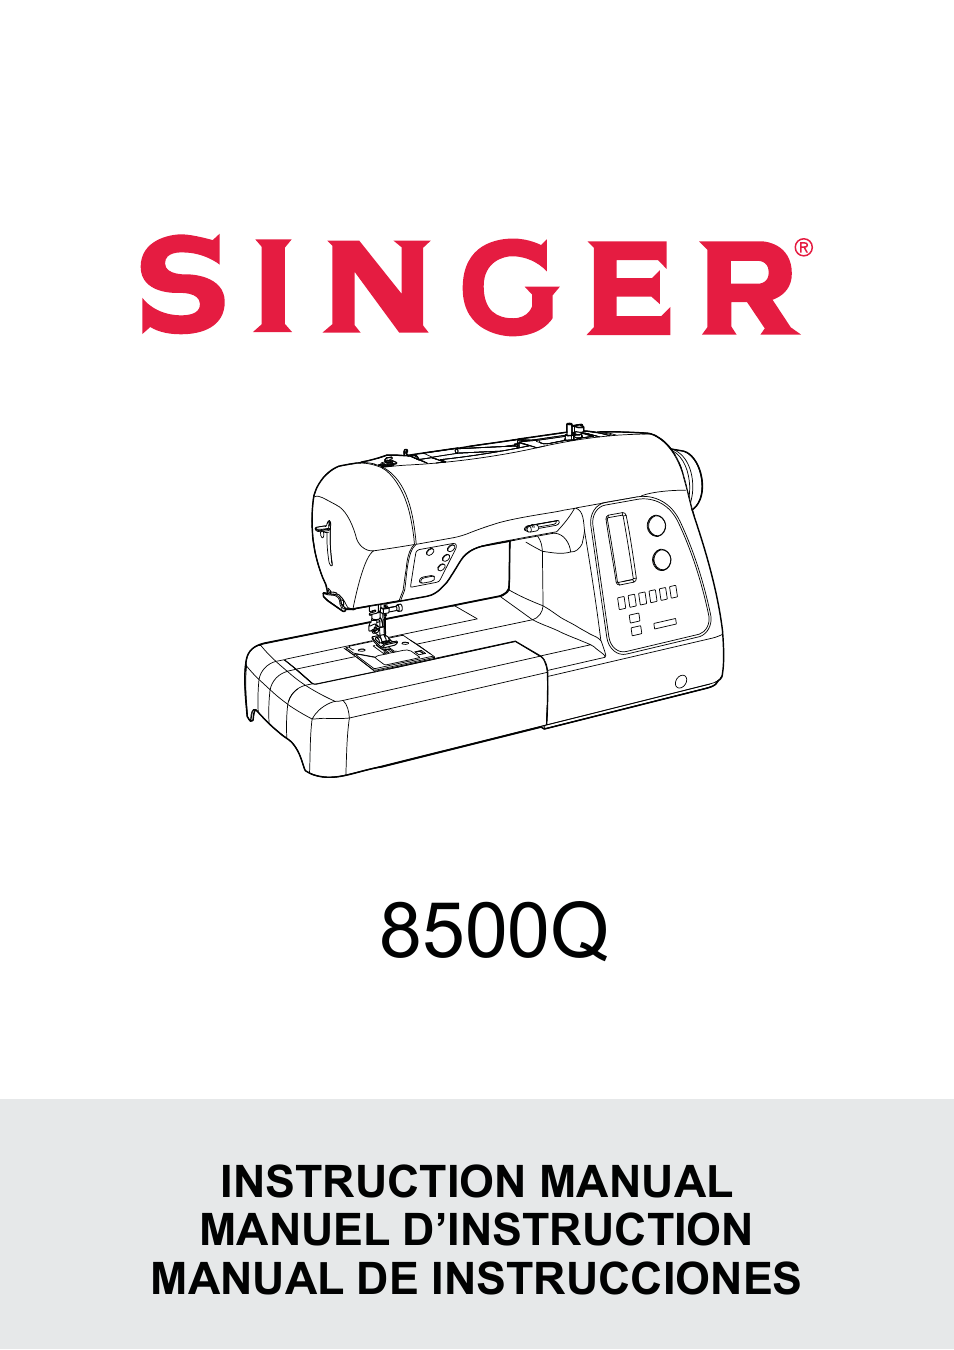 SINGER 8500Q MODERN QUILTER Instruction Manual User Manual